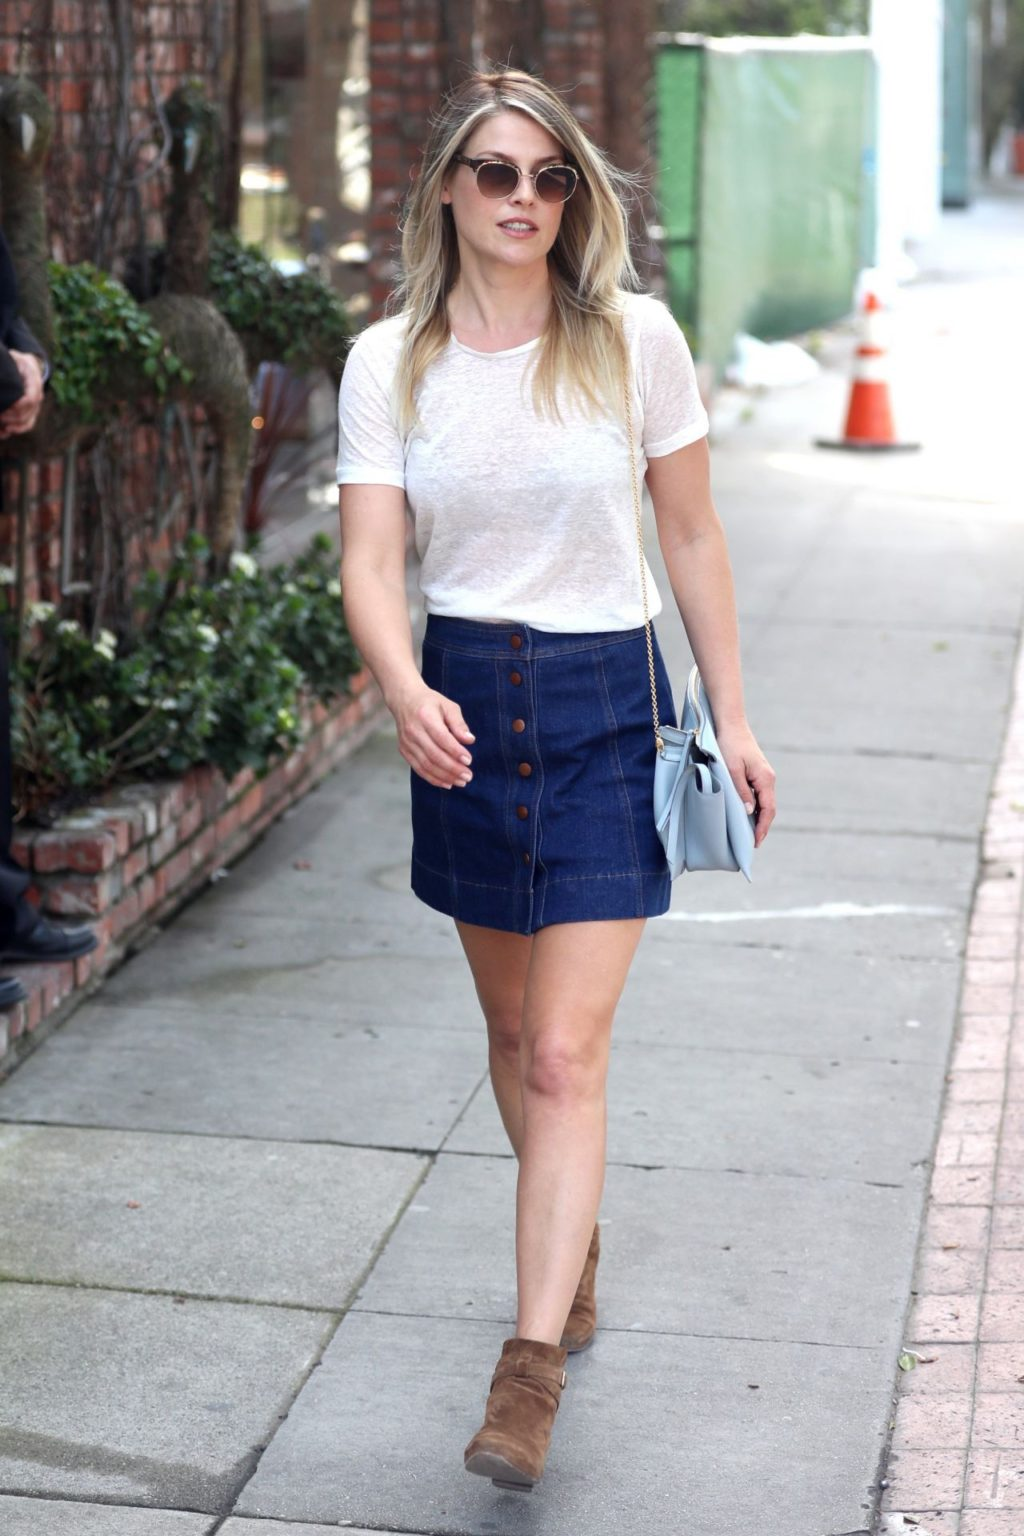 Skirt-and-T-shirt-1024x1536 120+ Fashion Trends and Looks for College Students in 2021